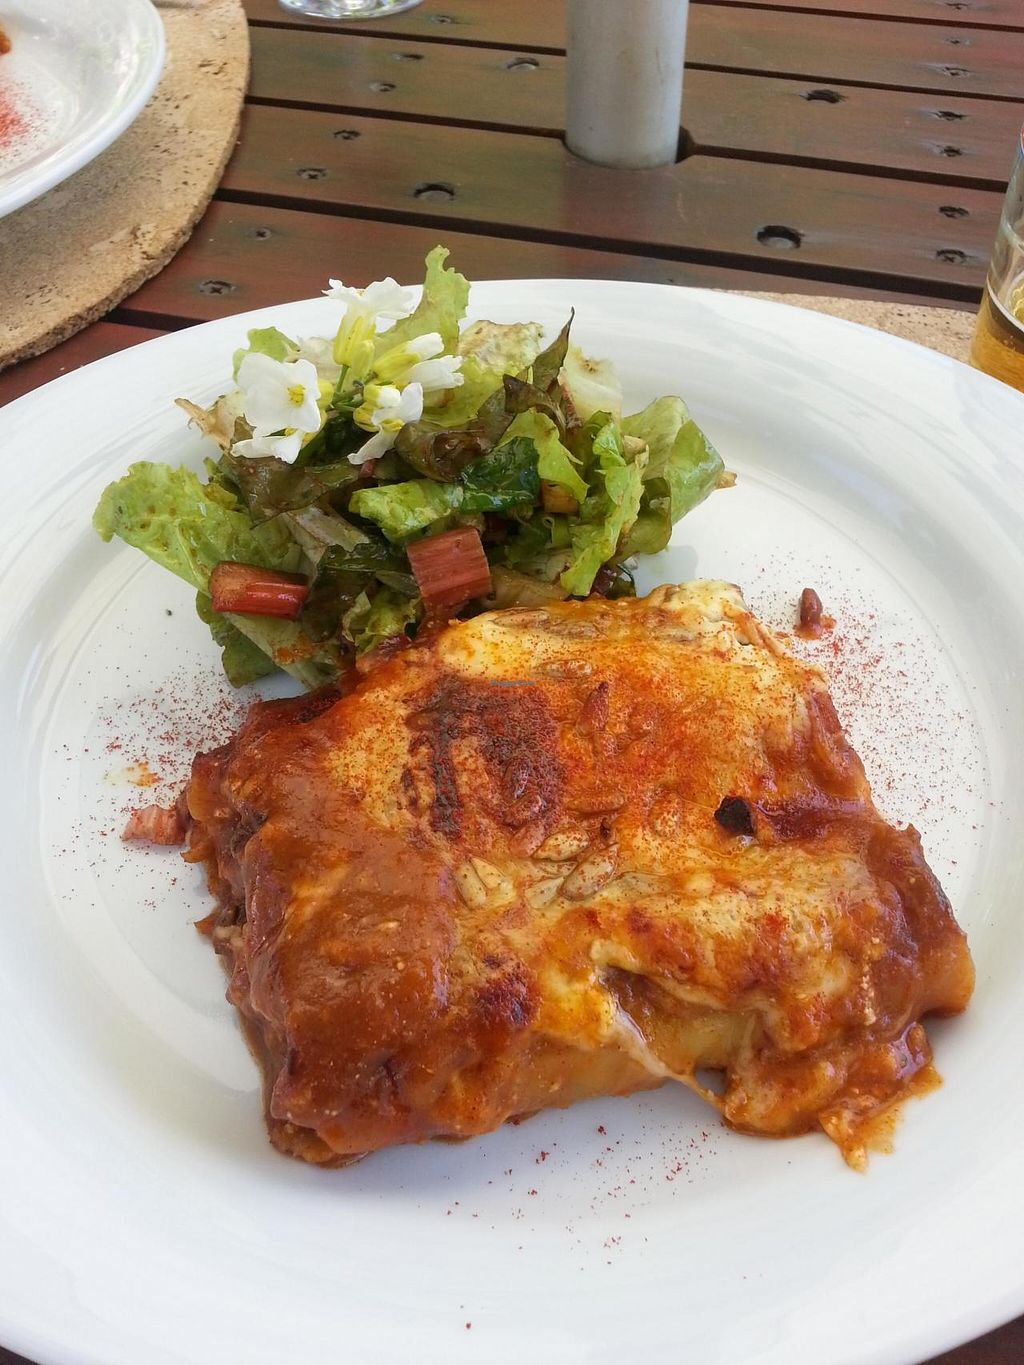 "Photo of Cor de Tangerina  by <a href=""/members/profile/dougdo"">dougdo</a> <br/>Main course of the menu do dia was a delicious cannelloni and salad <br/> April 24, 2015  - <a href='/contact/abuse/image/25067/100081'>Report</a>"